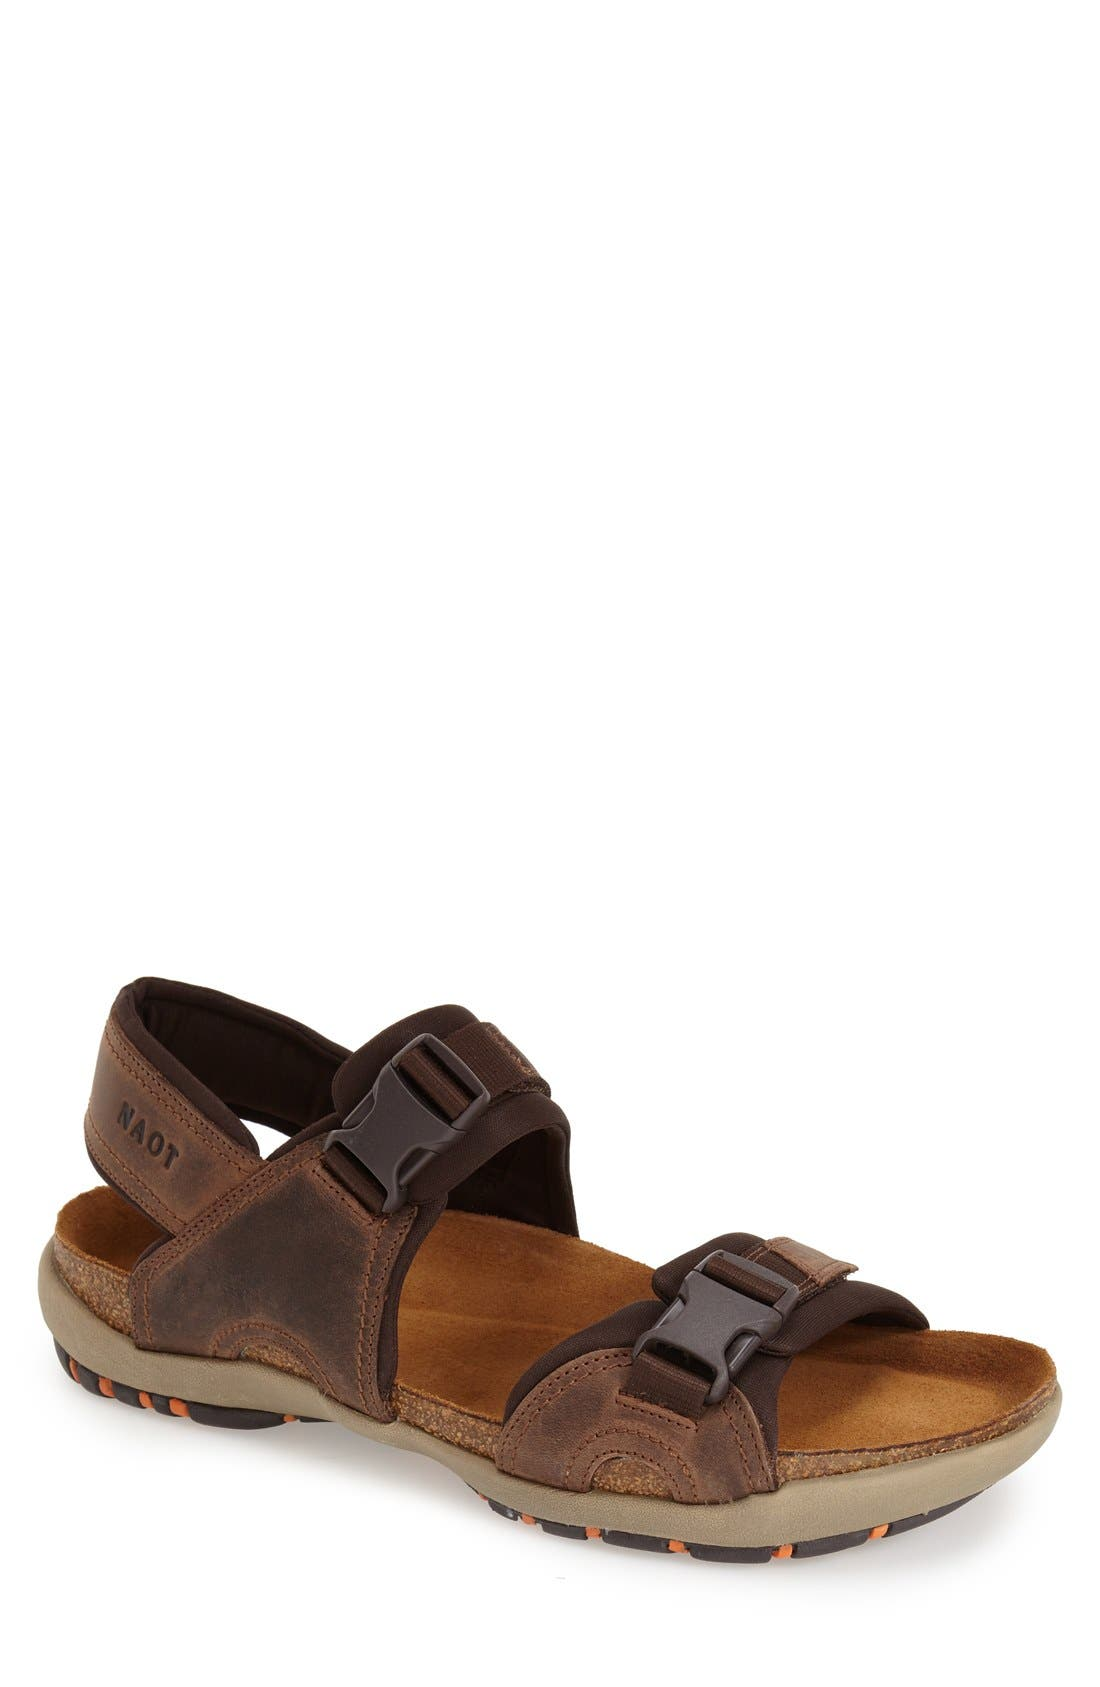 Explorer Sandal,                         Main,                         color, Bison Leather